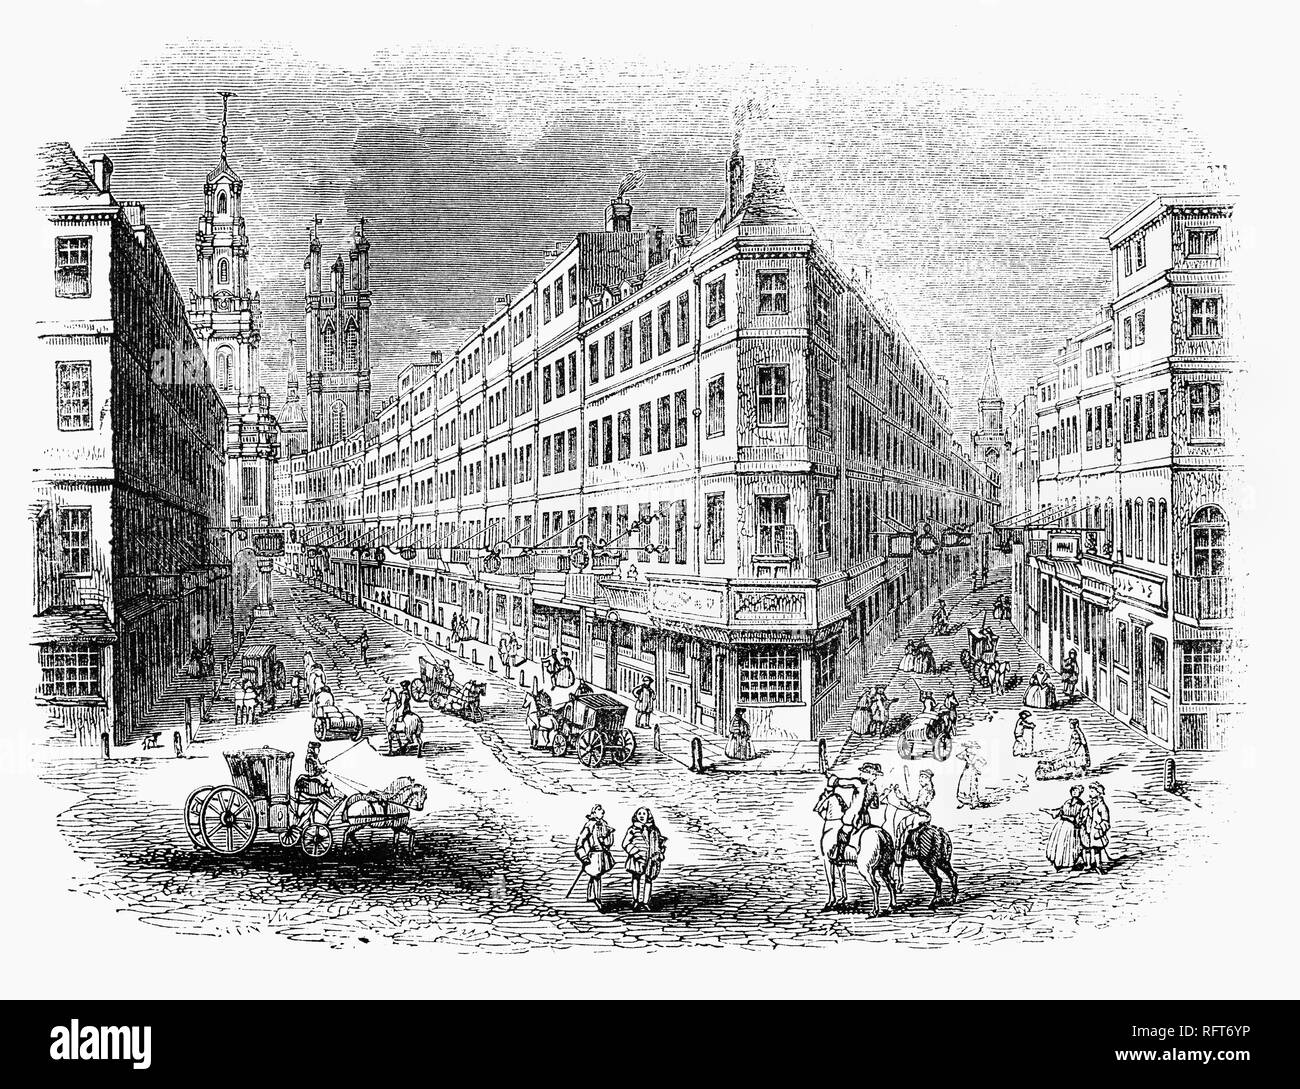 An 18th Century view of the junction of Cornhill and Lombard Street with the tower of the Royal Exchange in the distance, London, England. The Royal Exchange in London was founded in the 16th century by the merchant Thomas Gresham on the suggestion of his factor Richard Clough to act as a centre of commerce for the City of London - Stock Image